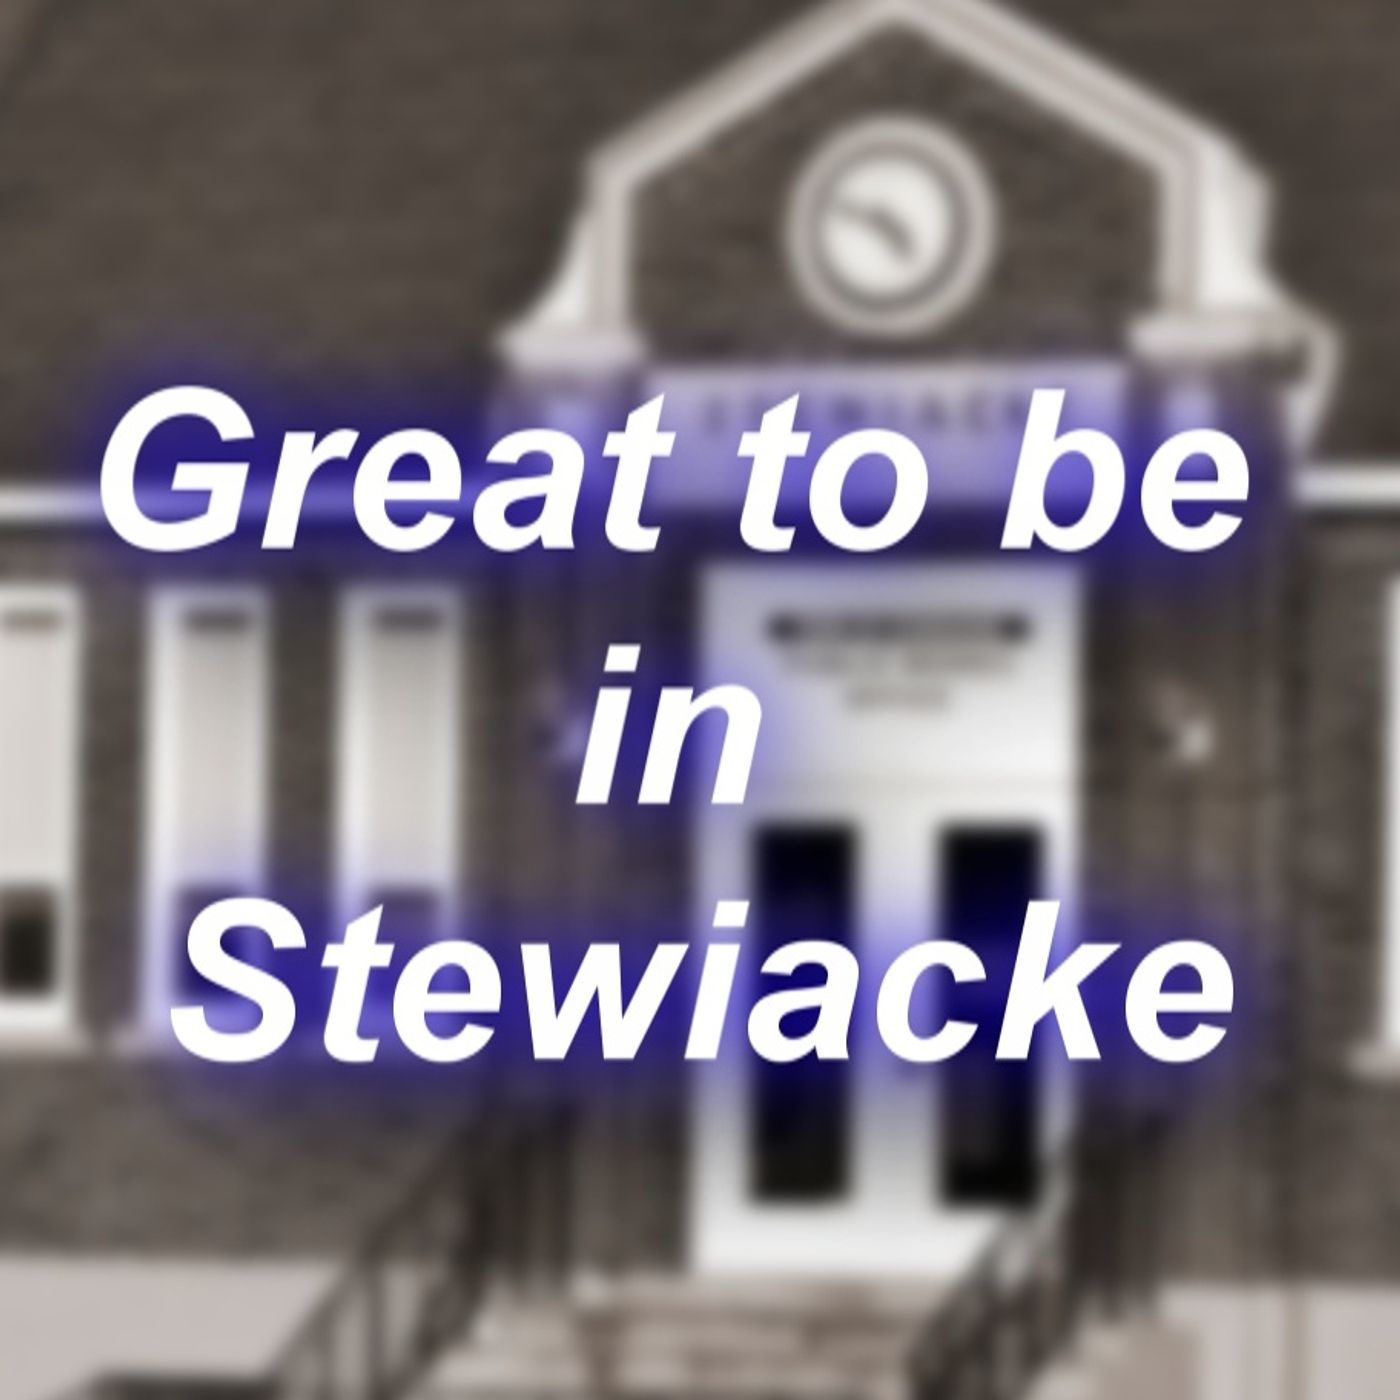 Great to be in Stewiacke